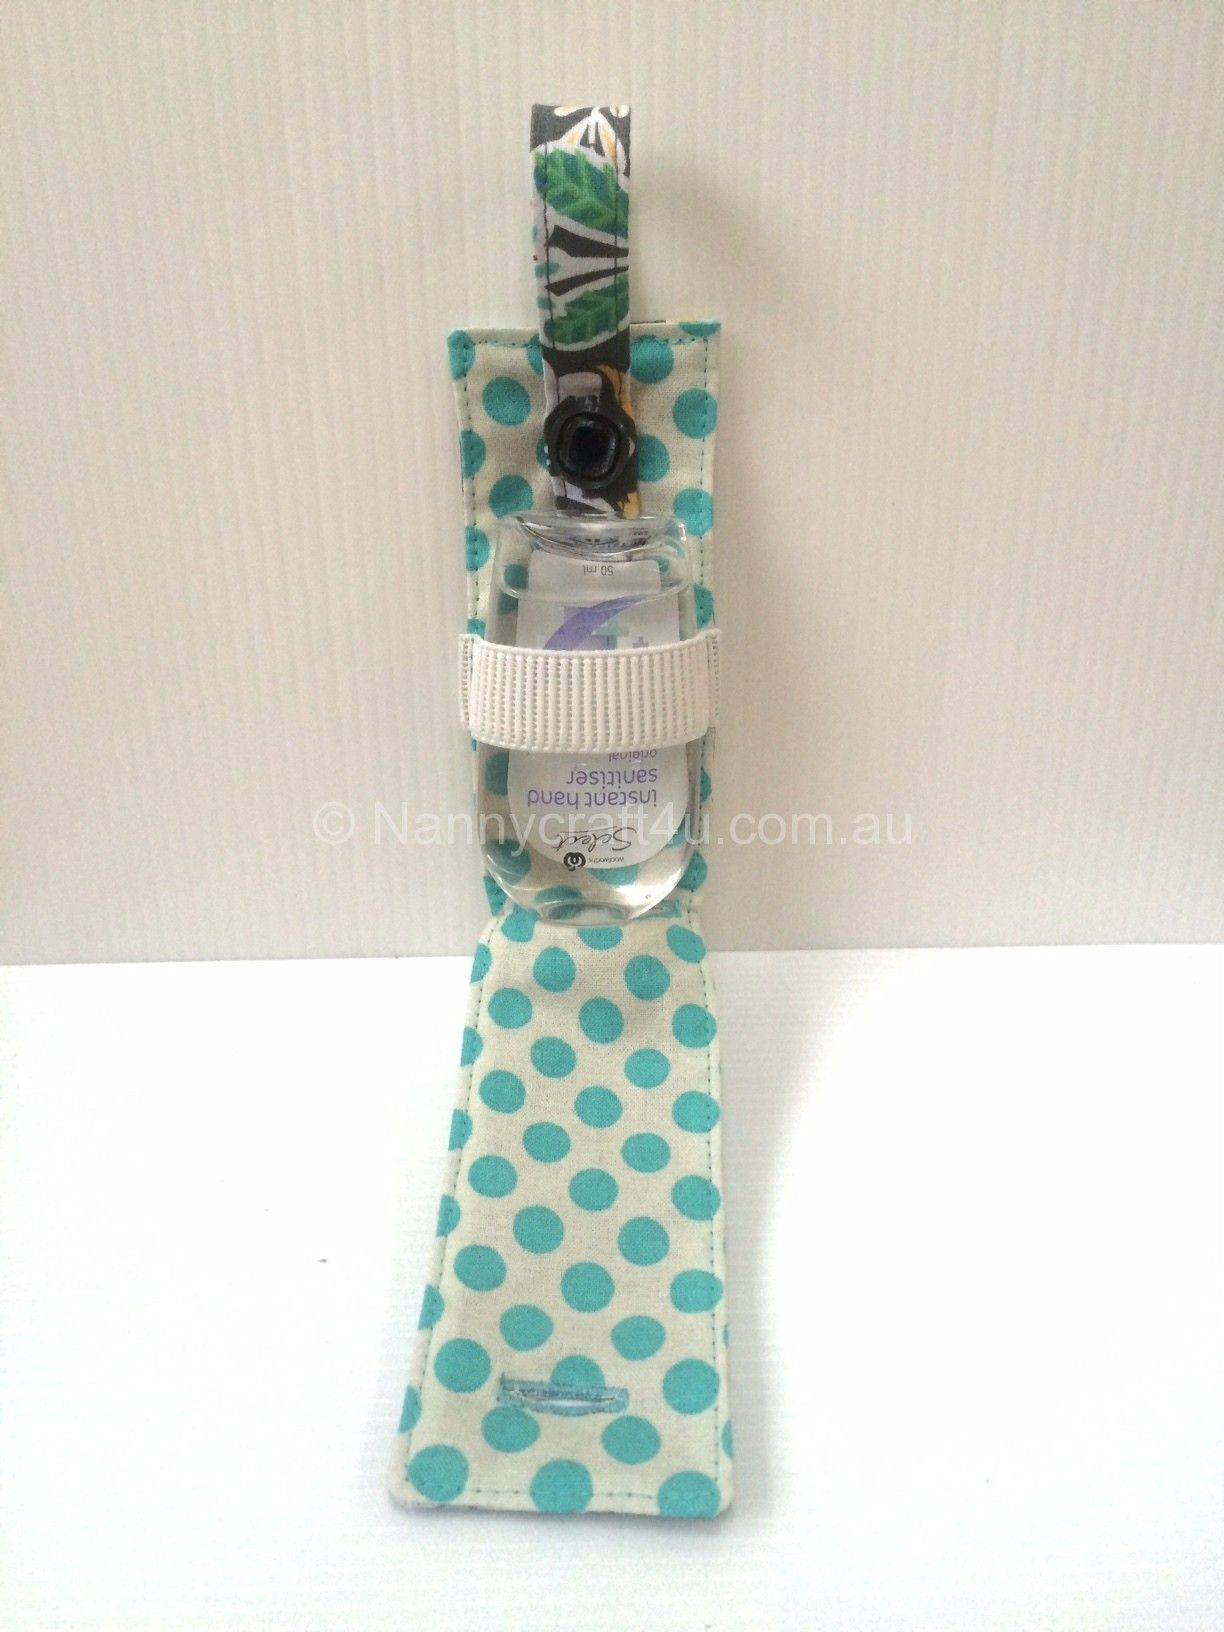 Hand Sanitizer Holders Hand Sanitizer Holder Sewing School